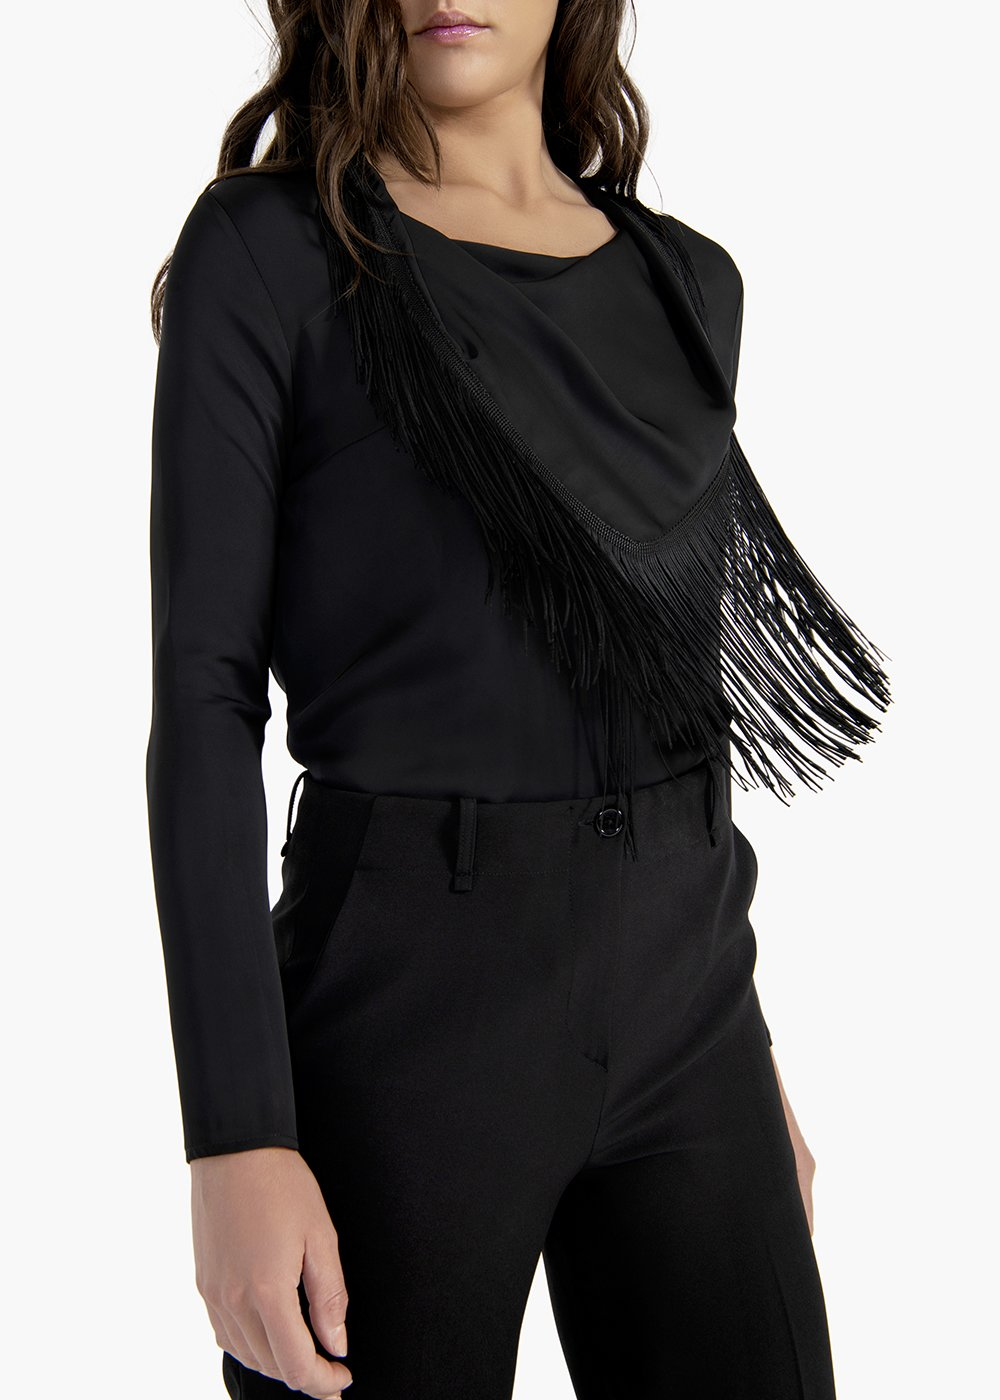 Sabry T-shirt in fluid fabric with V-neck and removable fringes